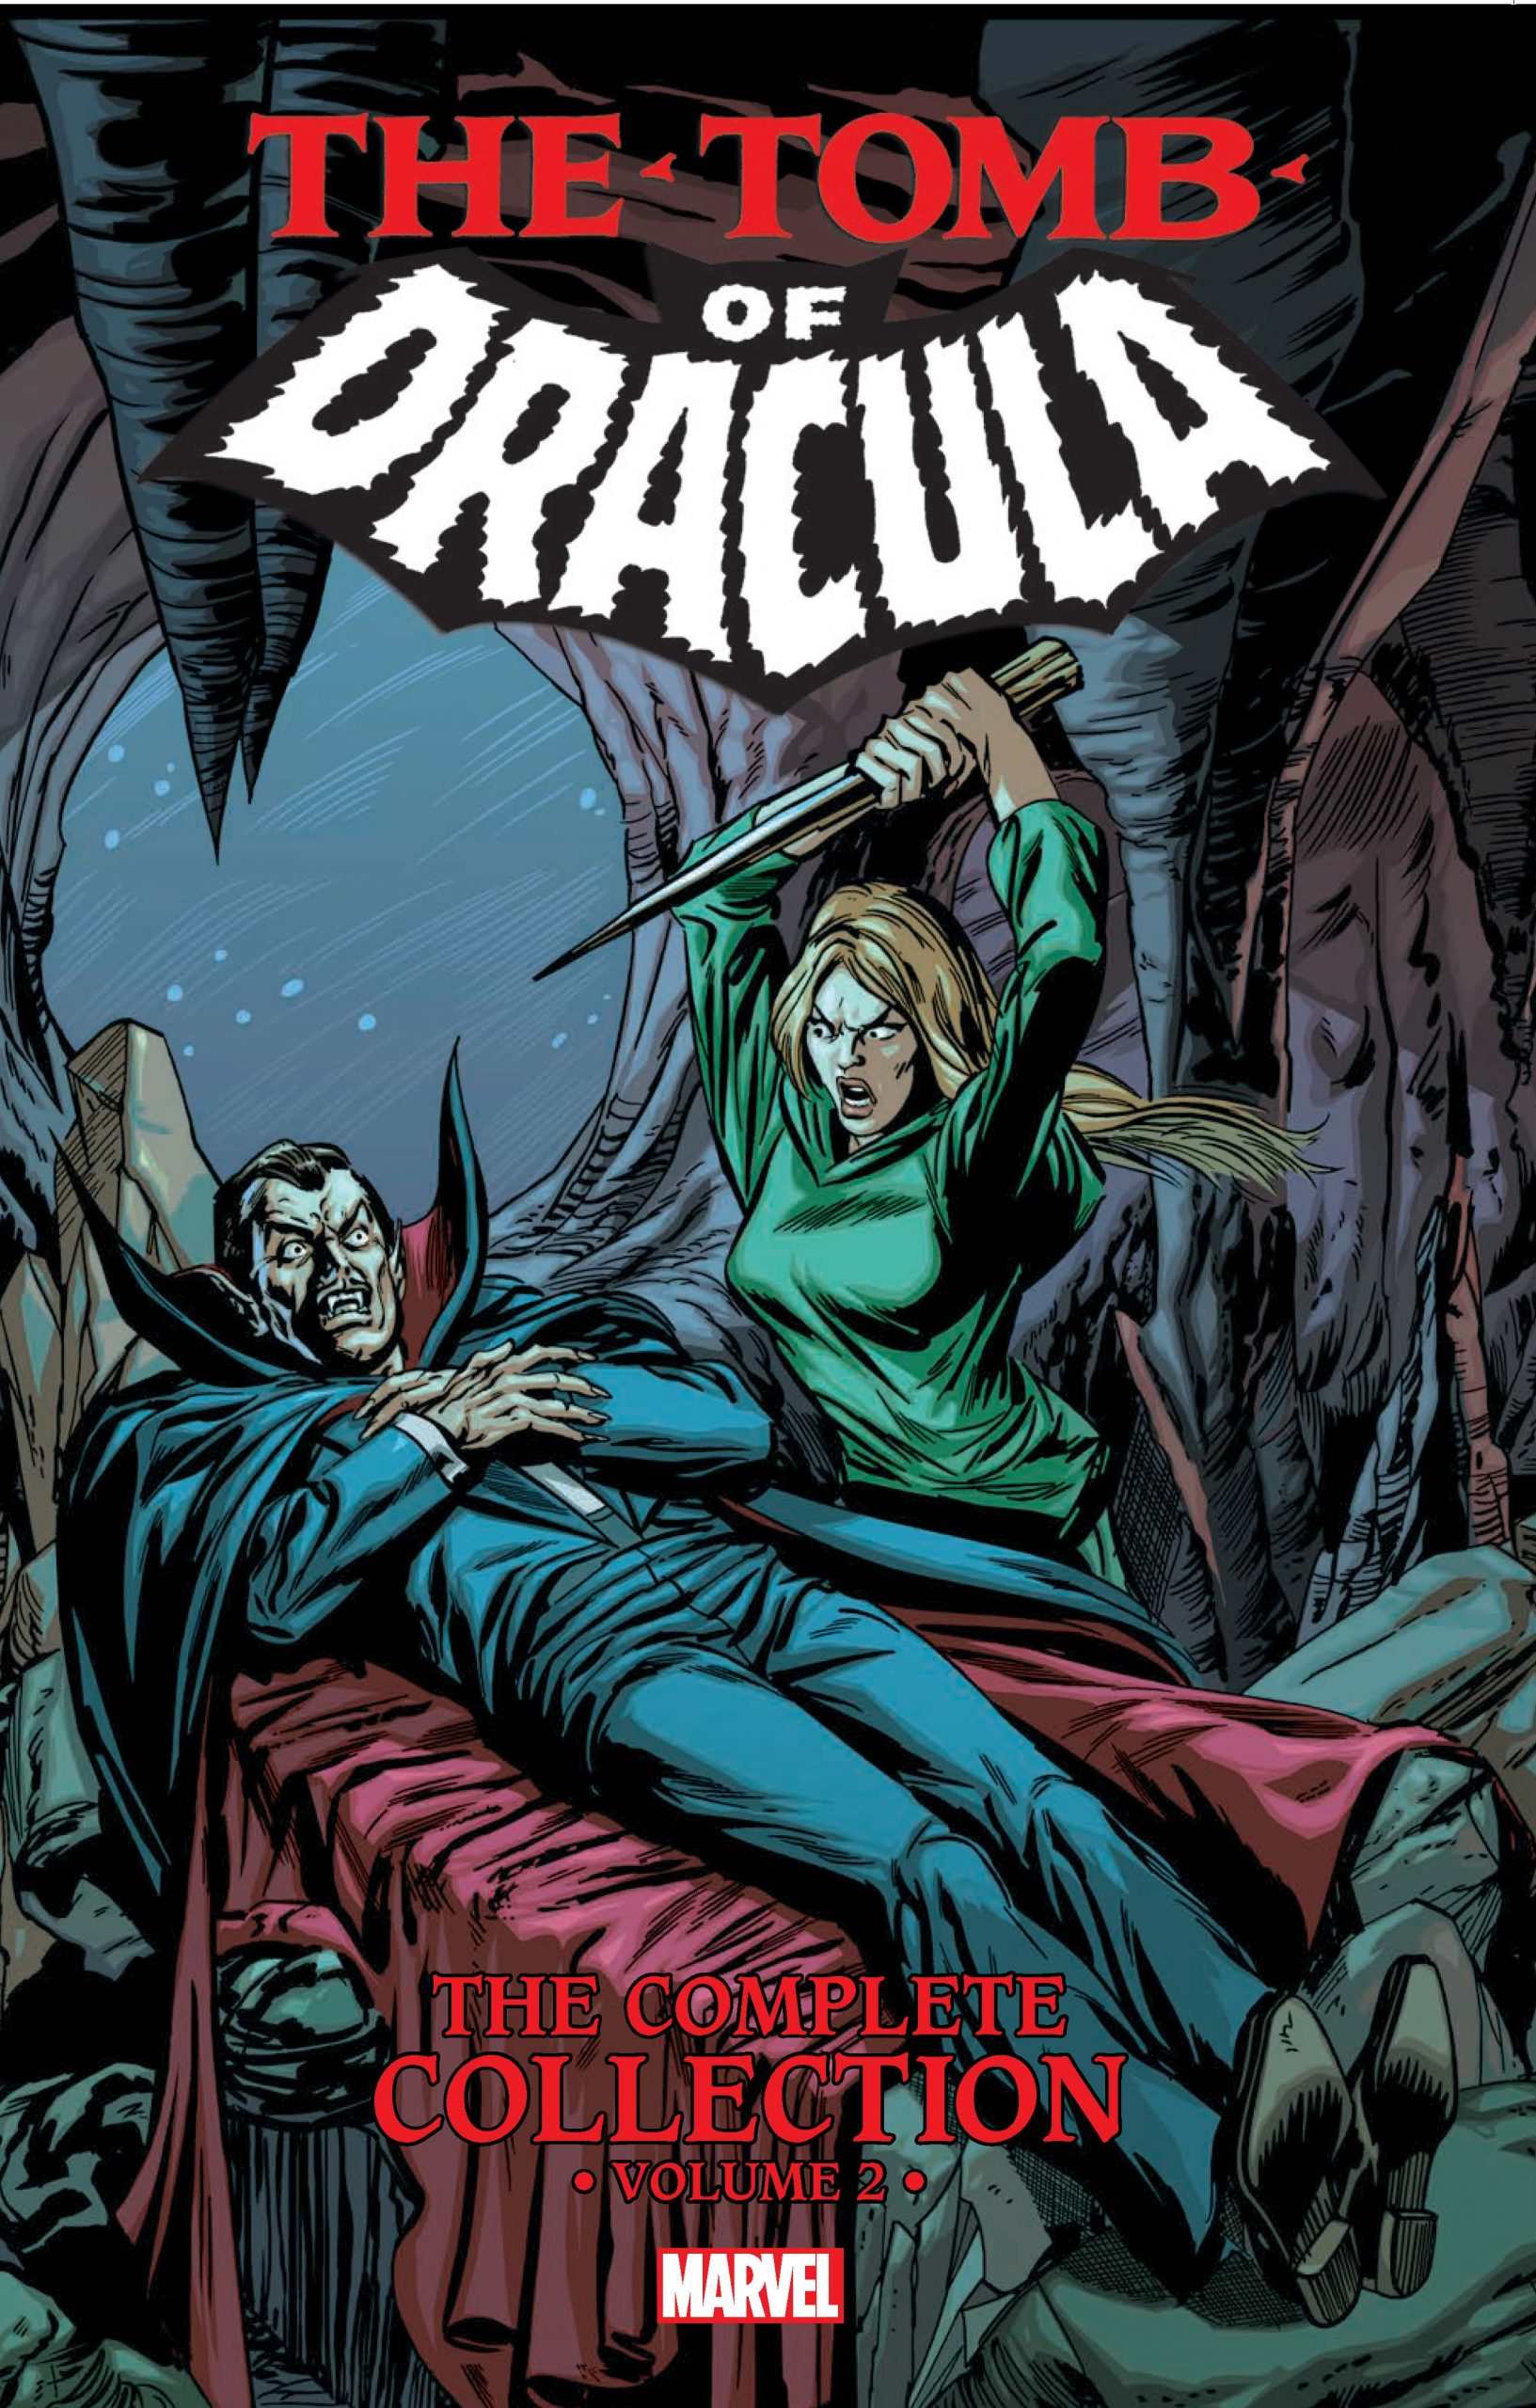 The Tomb of Dracula the Complete Collection Covert Art